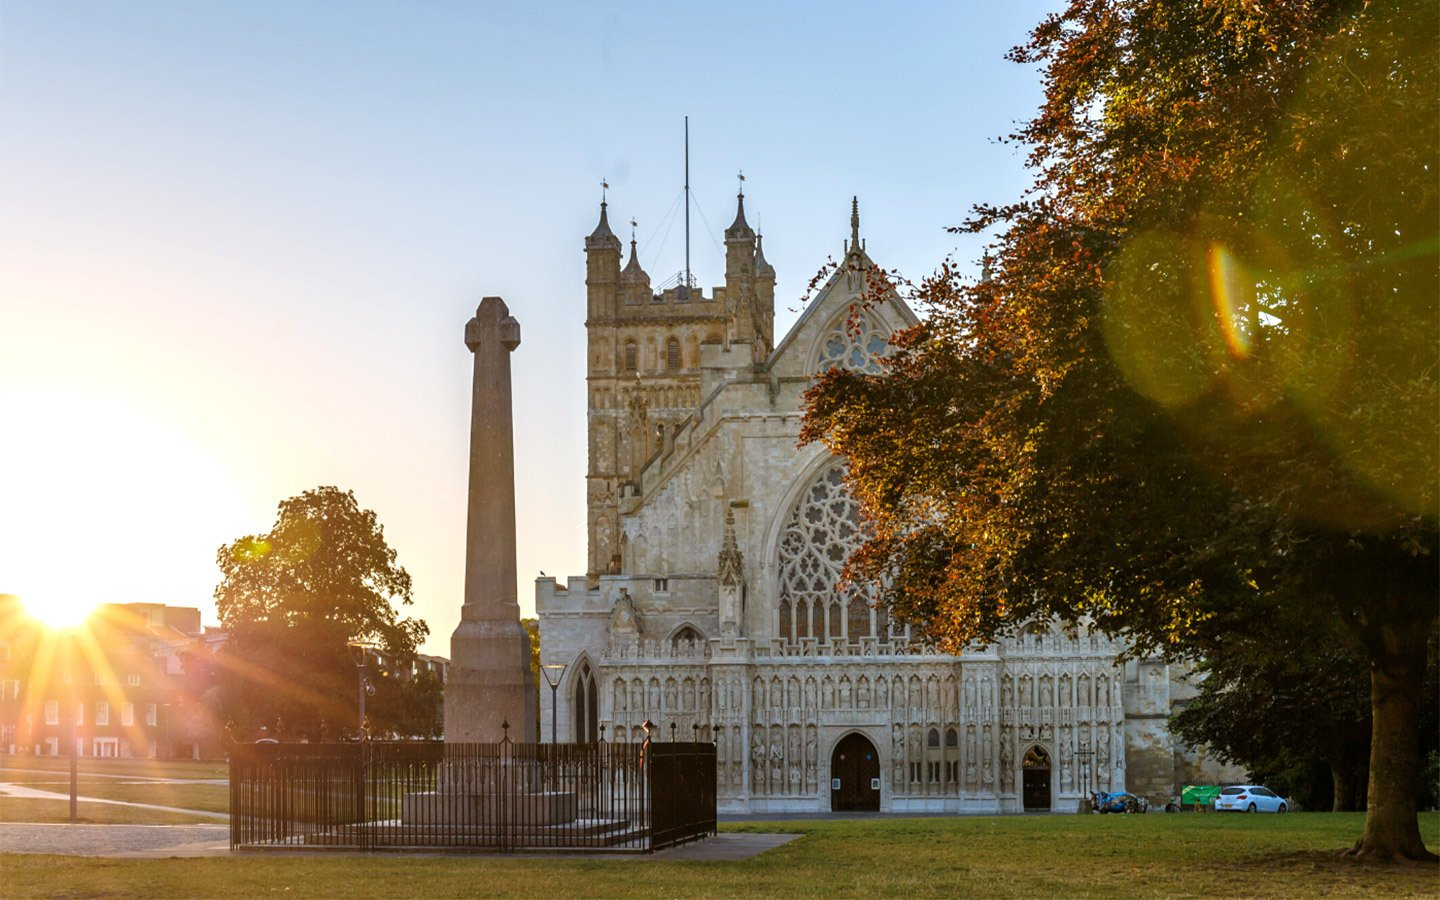 Exeter cathedral in Devon